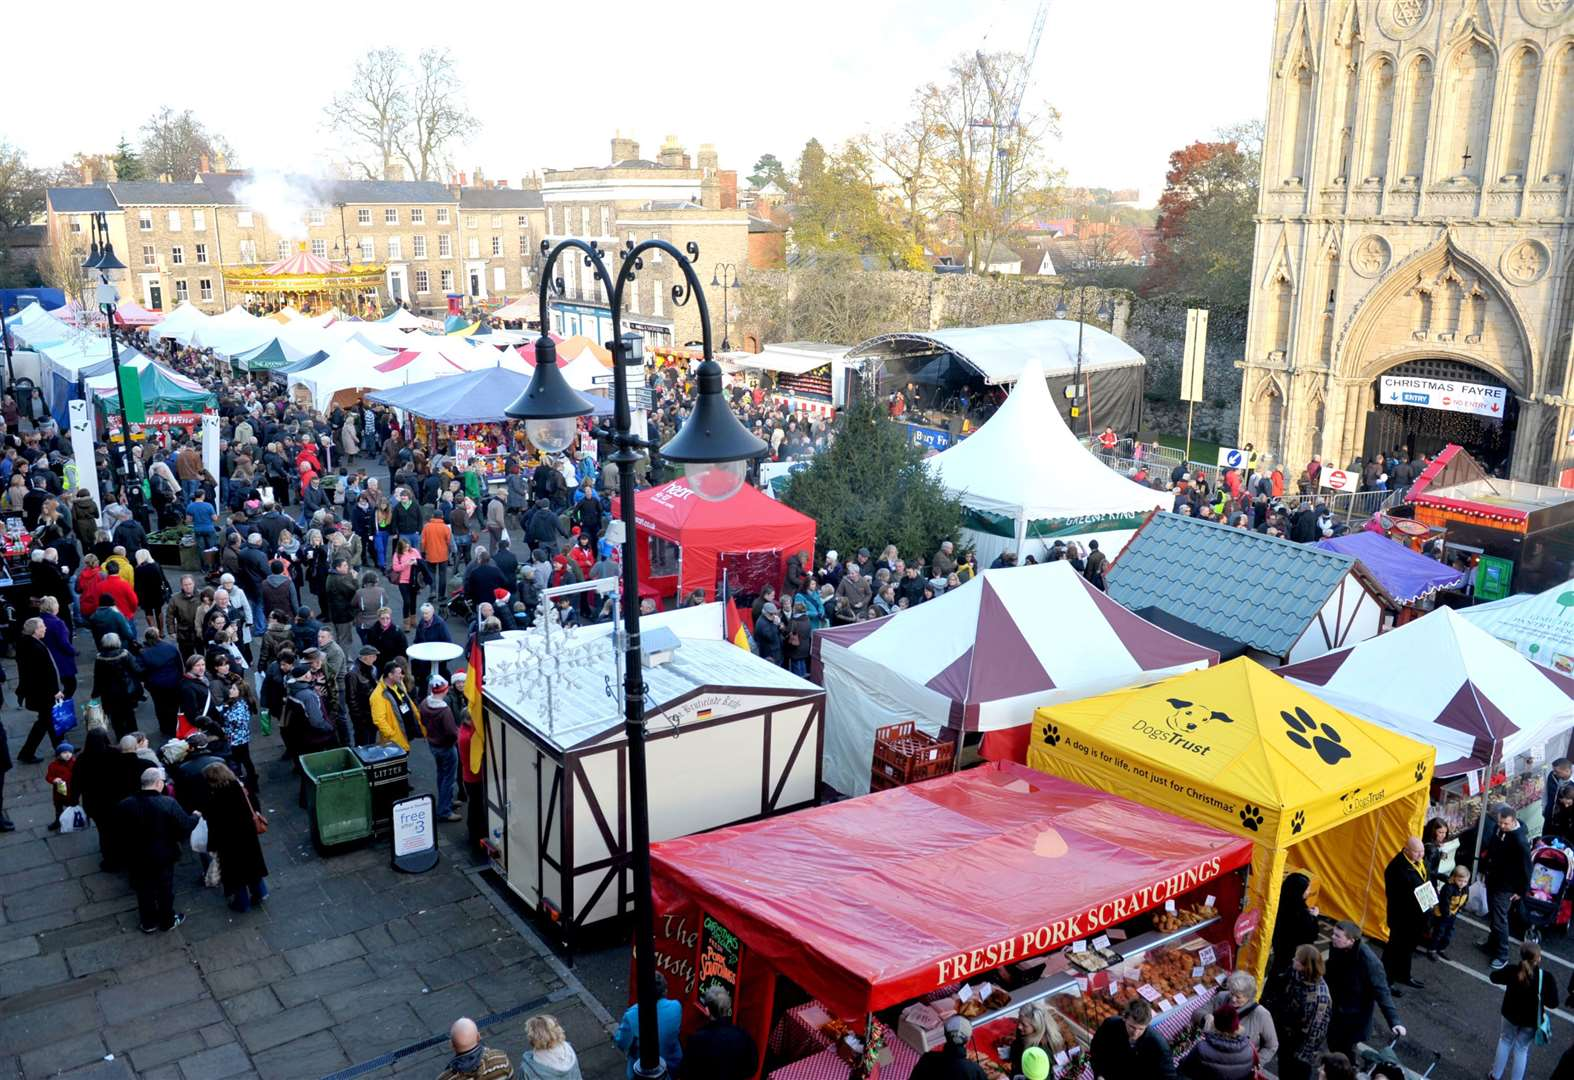 INTERACTIVE MAP: Bury St Edmunds Christmas Fayre is well underway